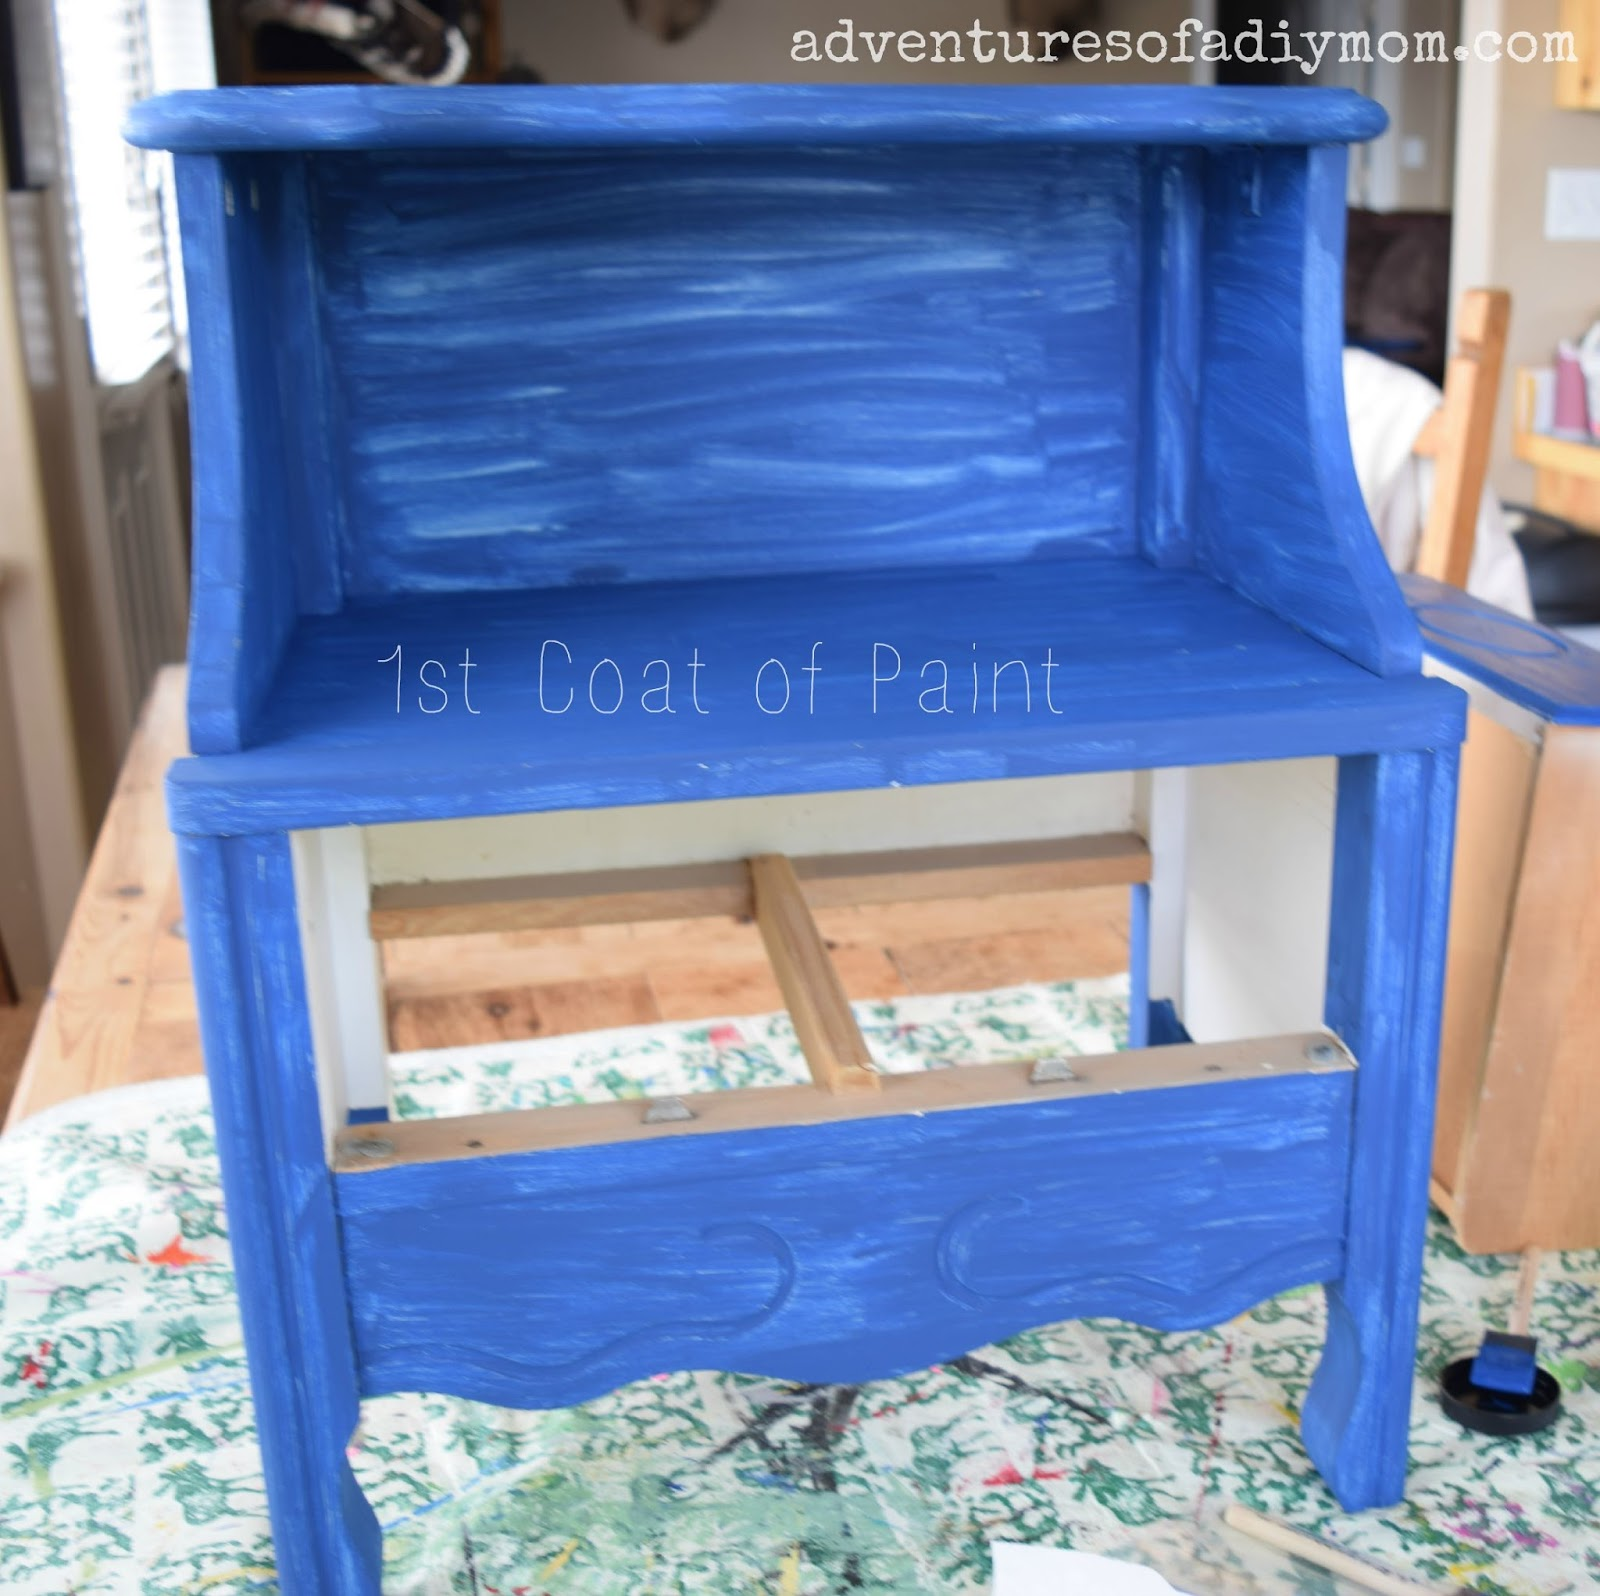 Front Porch Table - Adventures of a DIY Mom